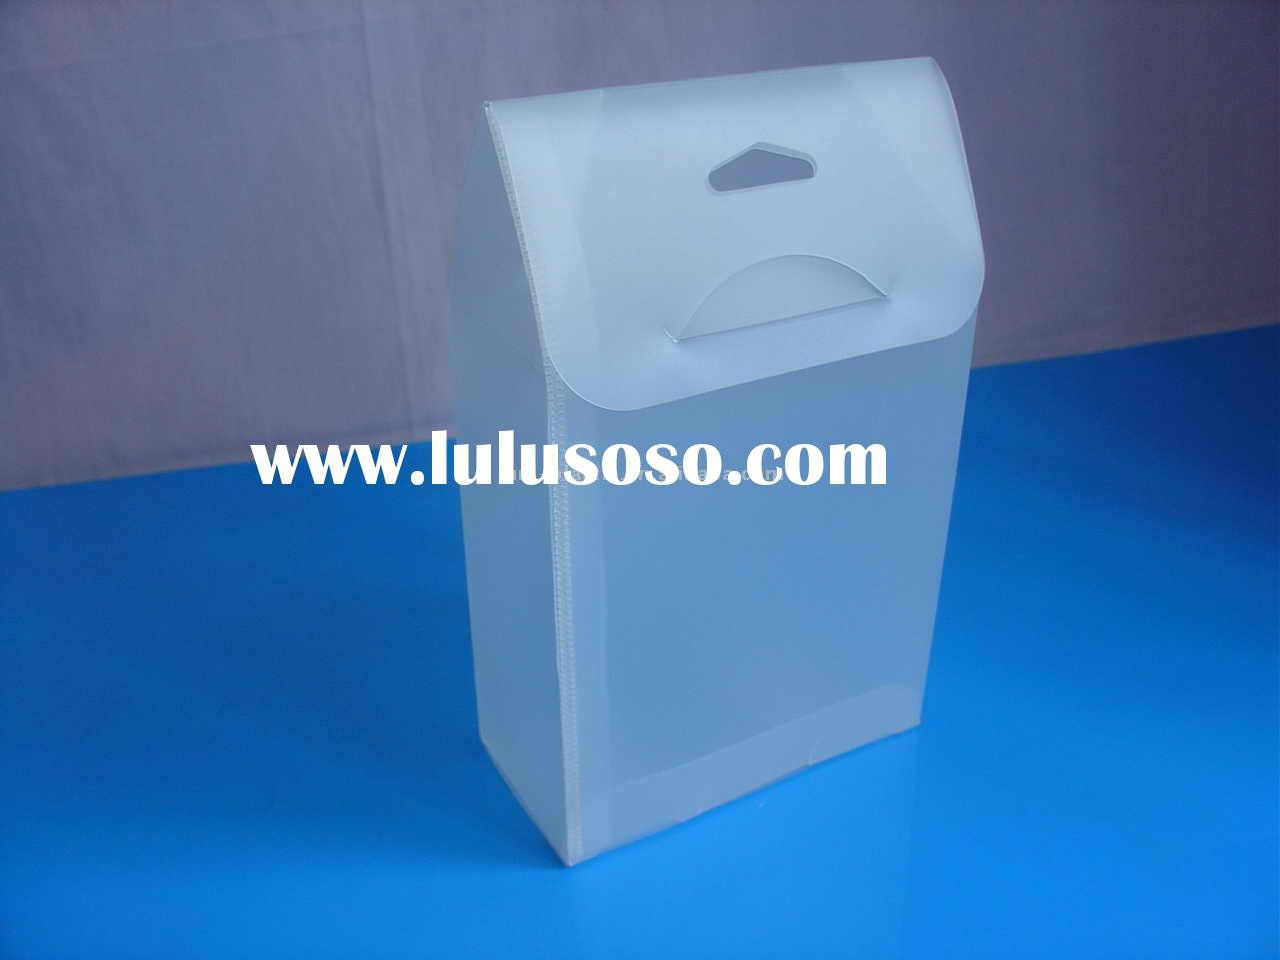 PP Box, Plastic Box, Folding Box, PVC Box, PET Box, Packaging Box